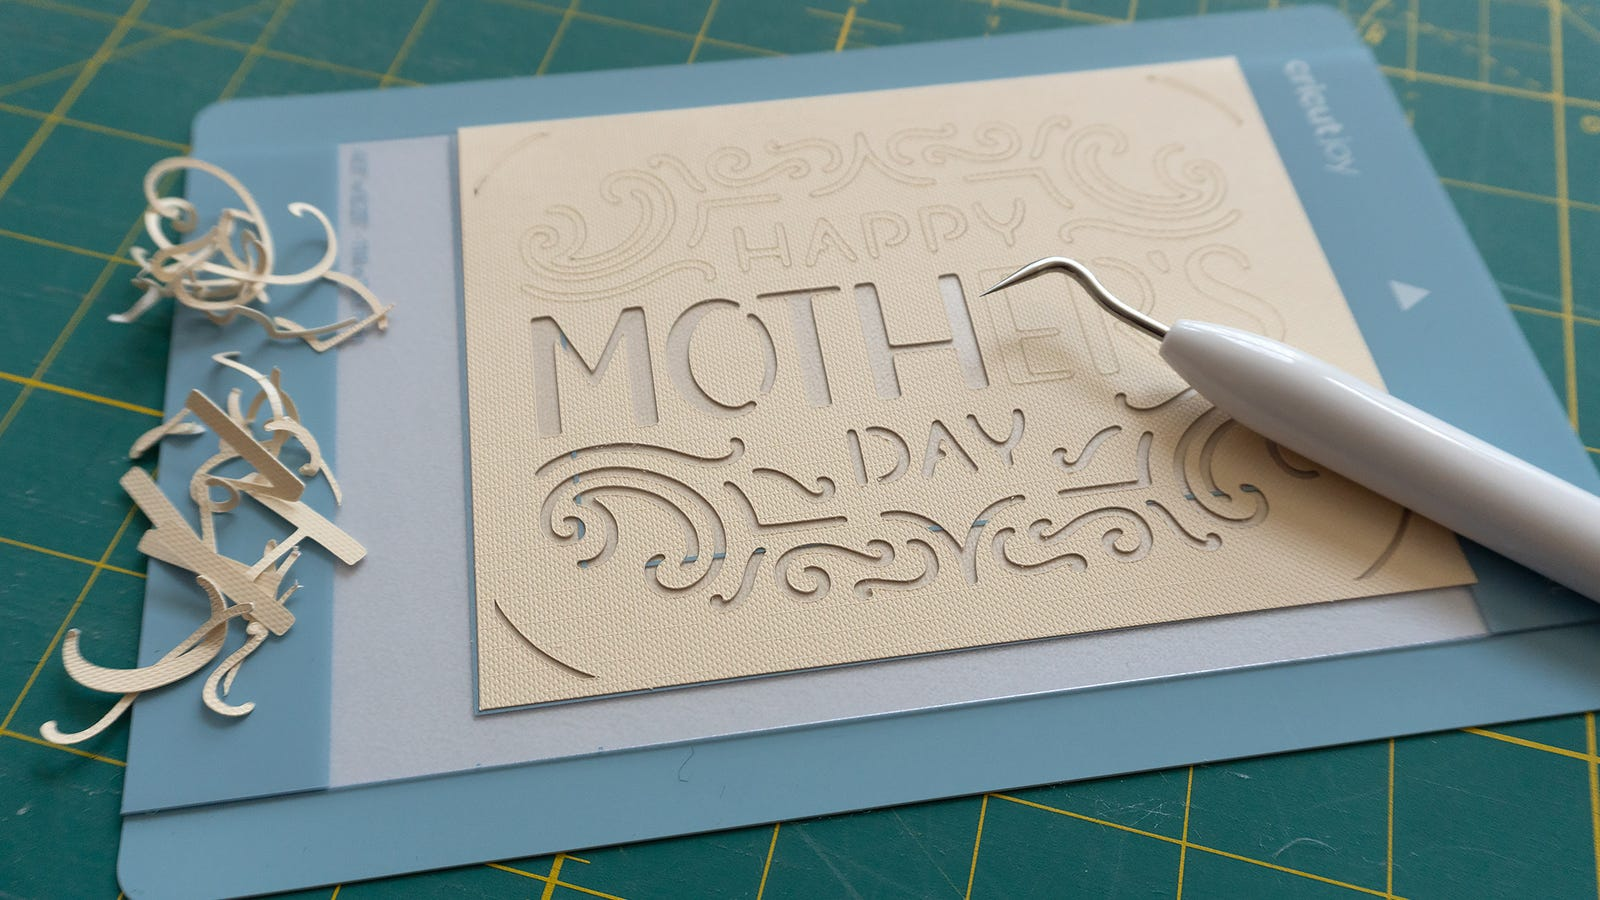 Loading pre-made designs and sending them to the Cricut Joy is the easy part. Once your design is cut you'll need to spend a bit of time, depending on the complexity, carefully removing it from the adhesive cutting mat.